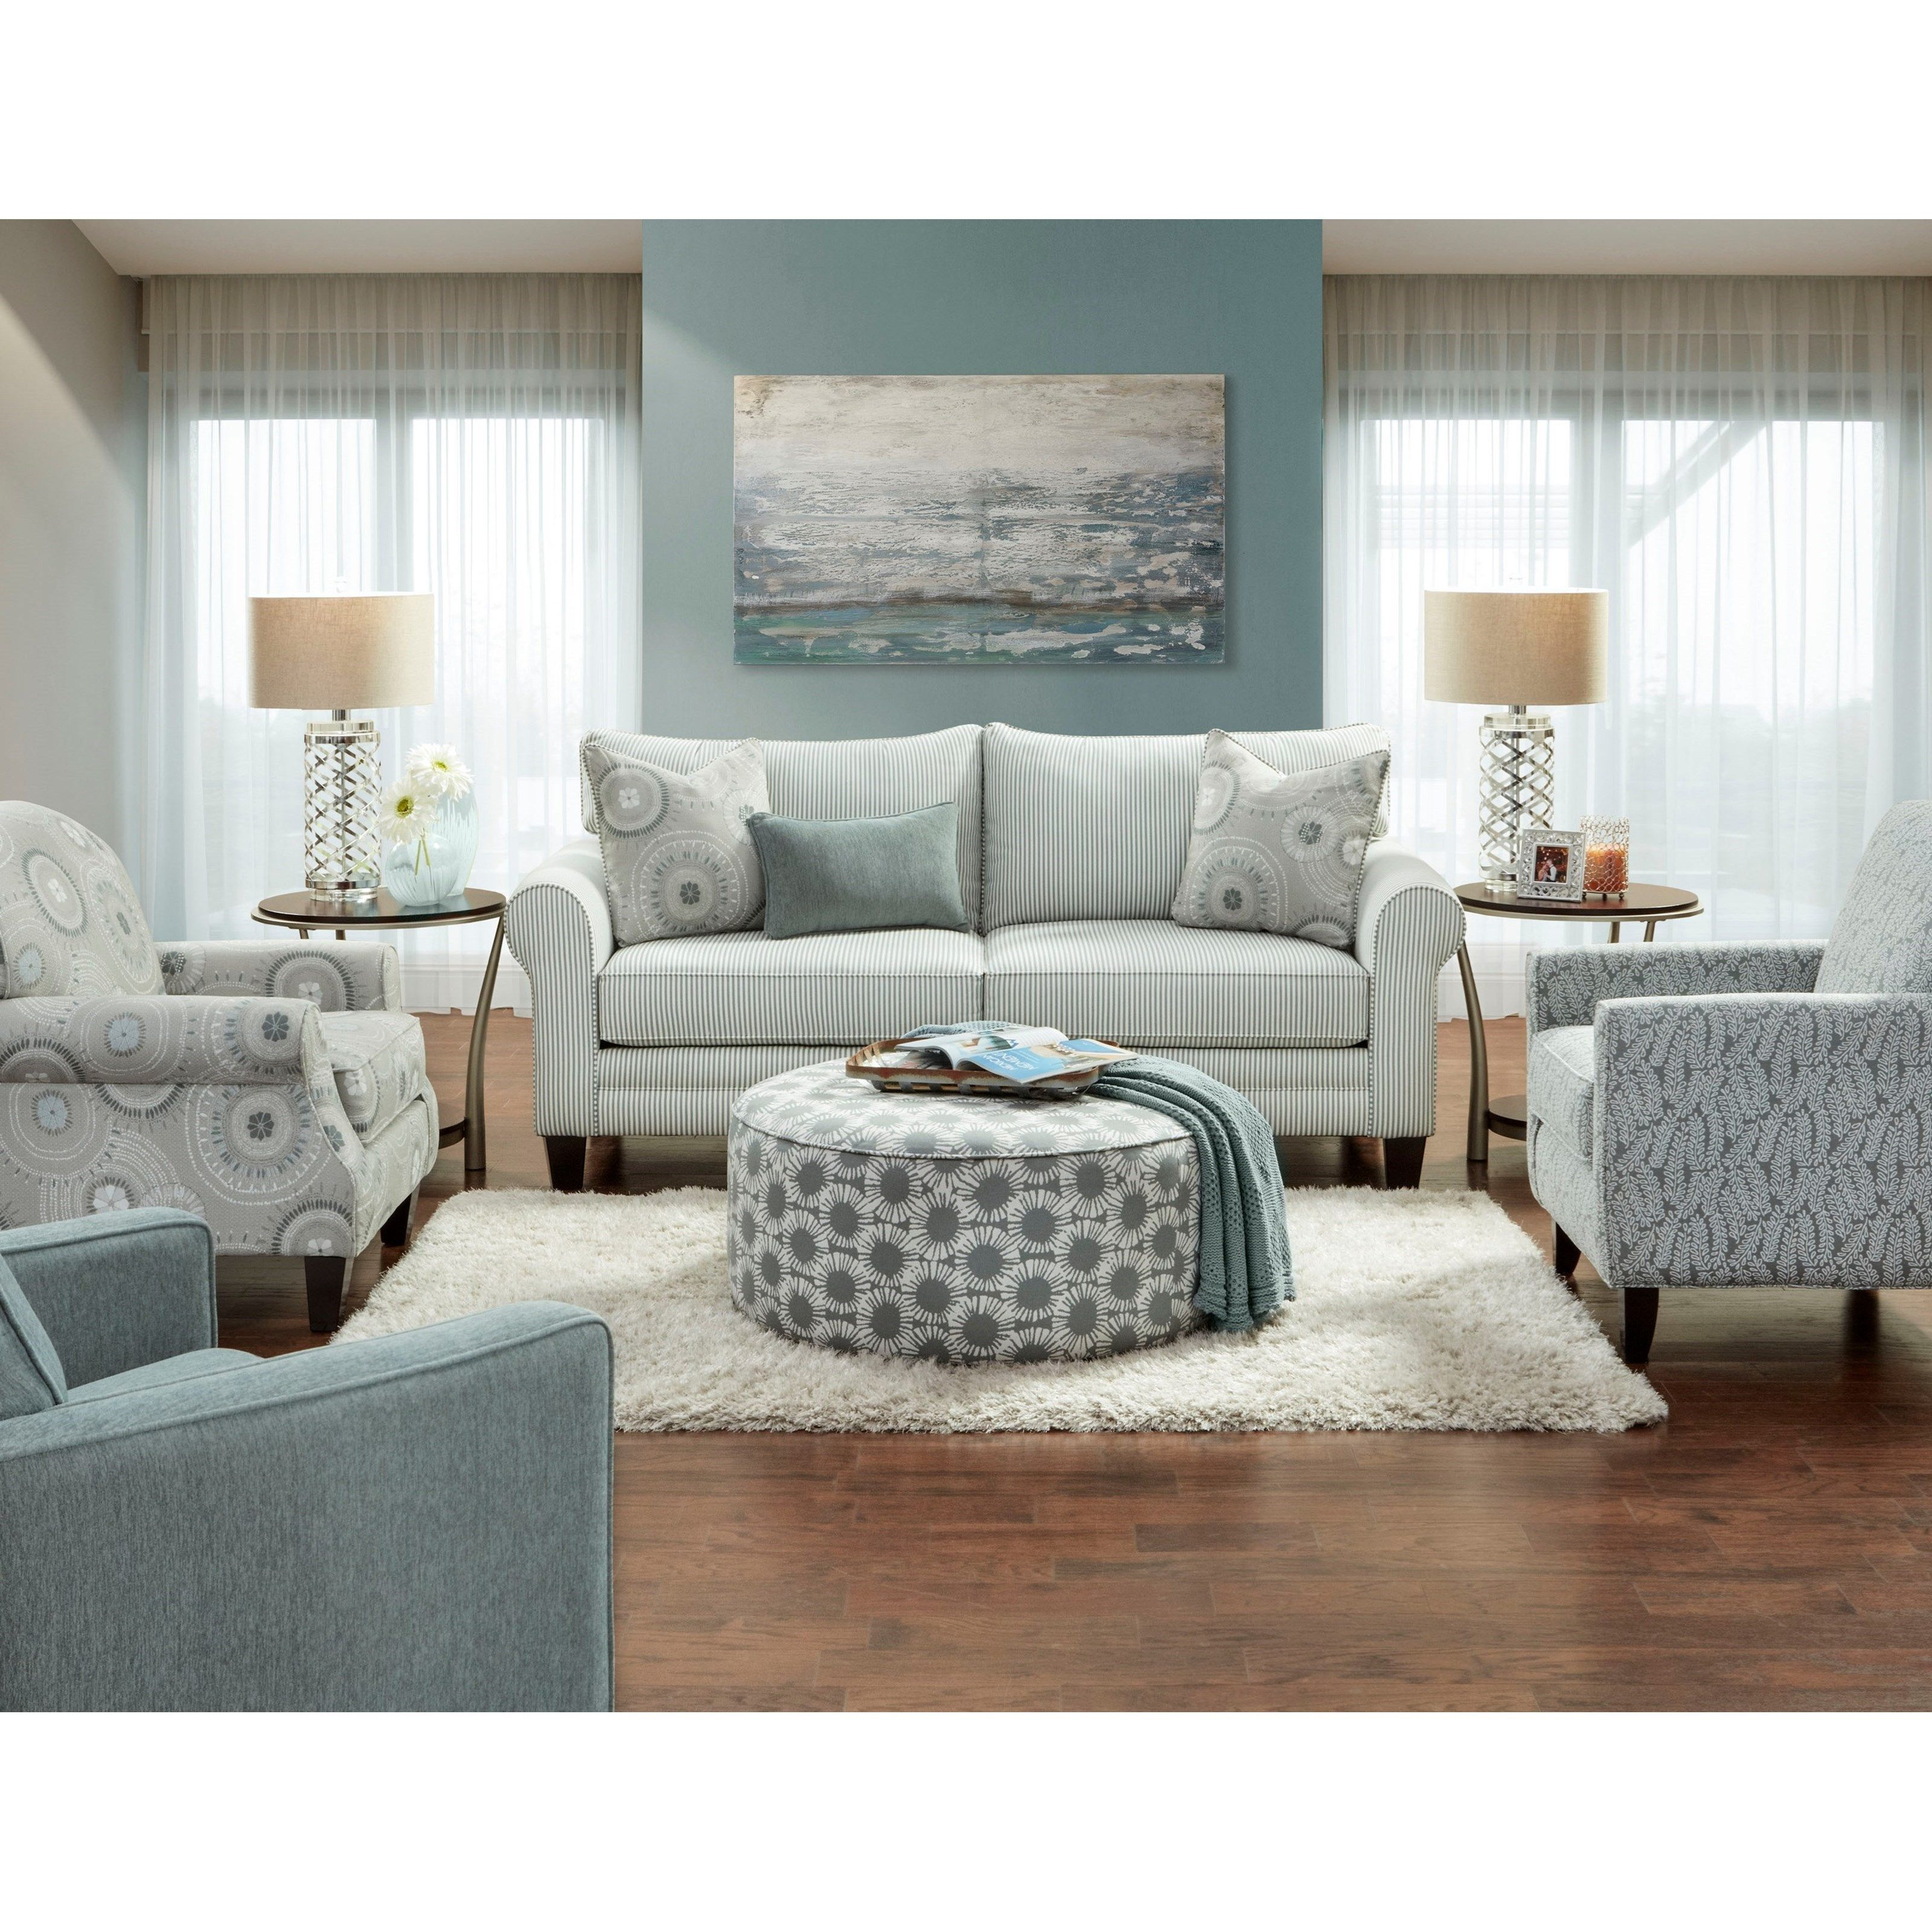 1180 Casual Contemporary Sleeper Sofa In Performance Fabric By Vfm